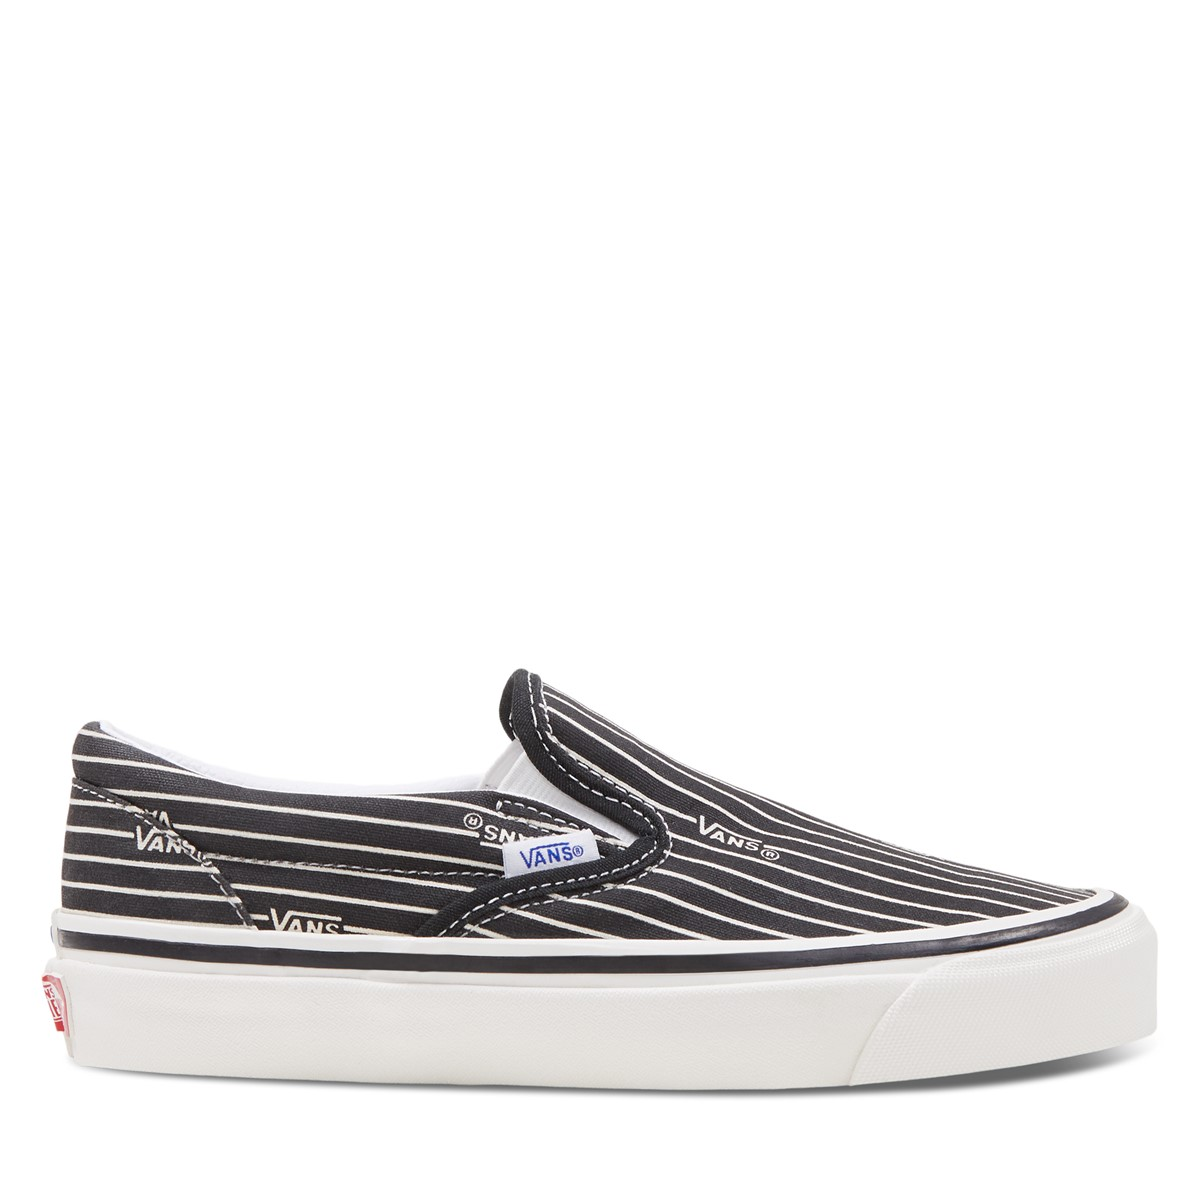 Women's Anaheim Factory Striped Classic 98 DX Slip-Ons Sneakers in Black